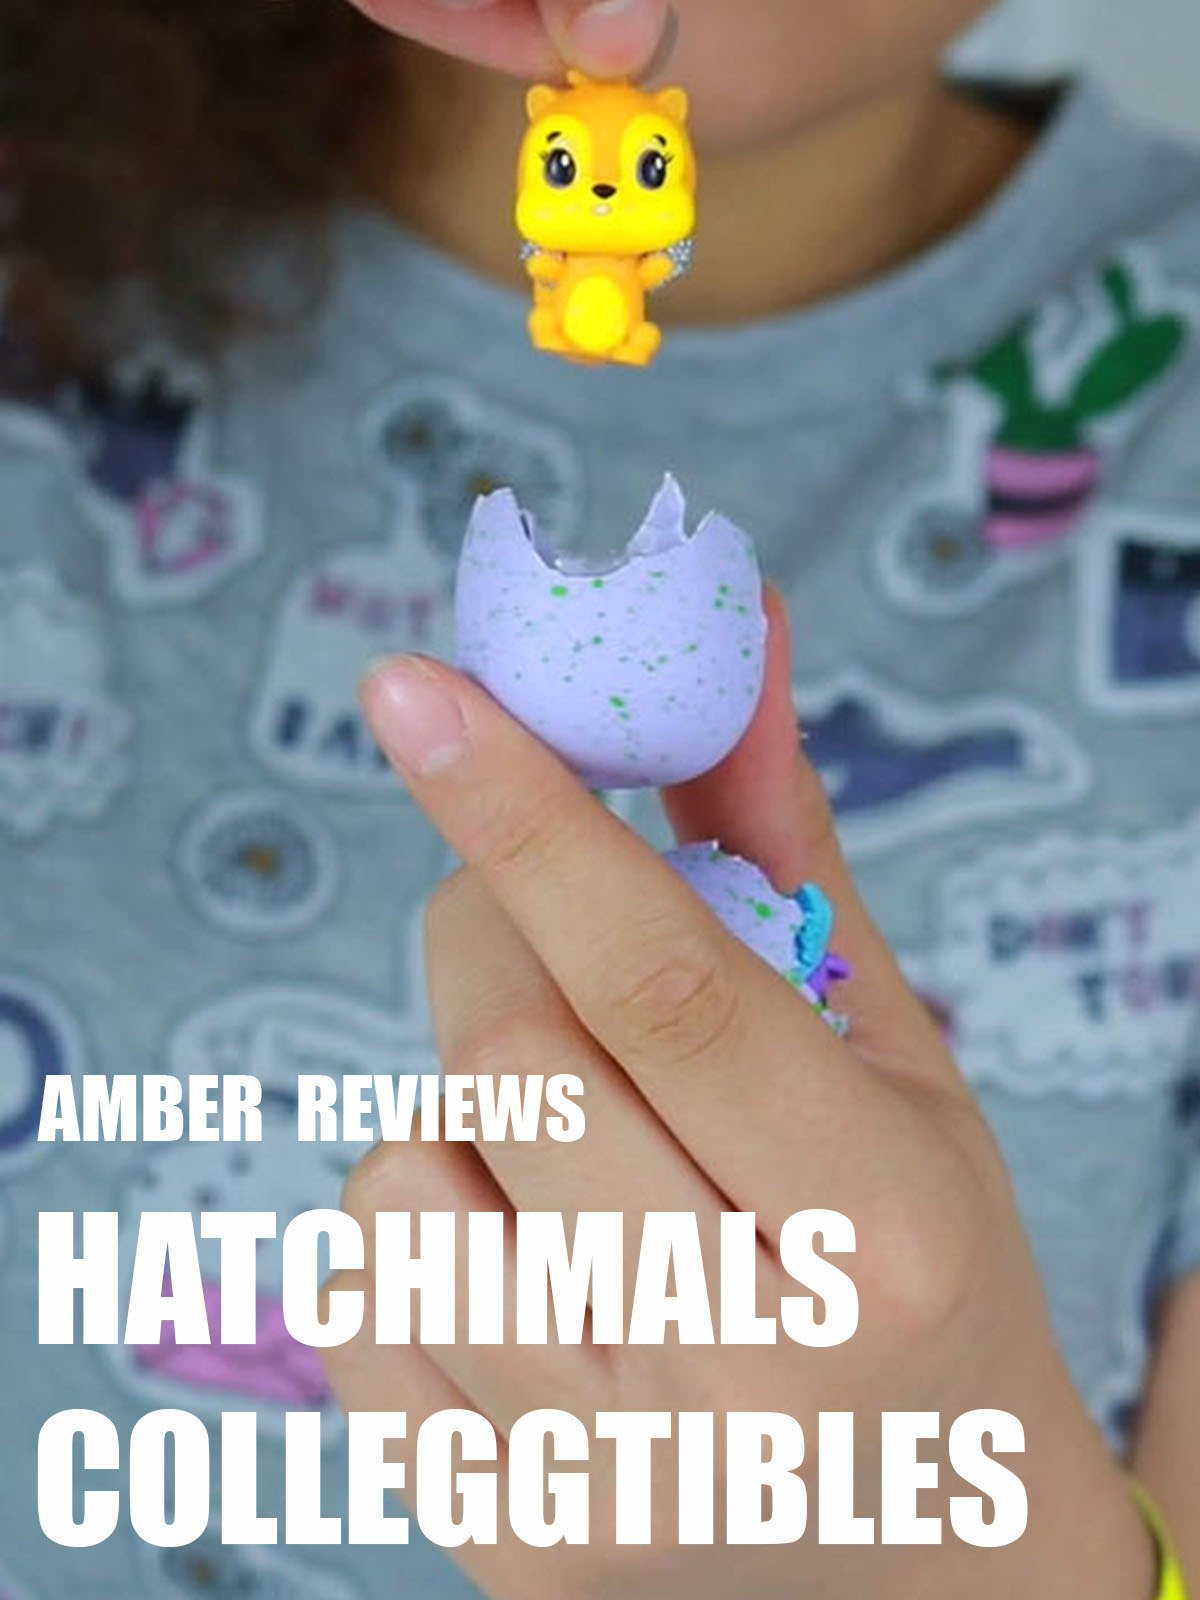 Amber Reviews Hatchimals Colleggtibles